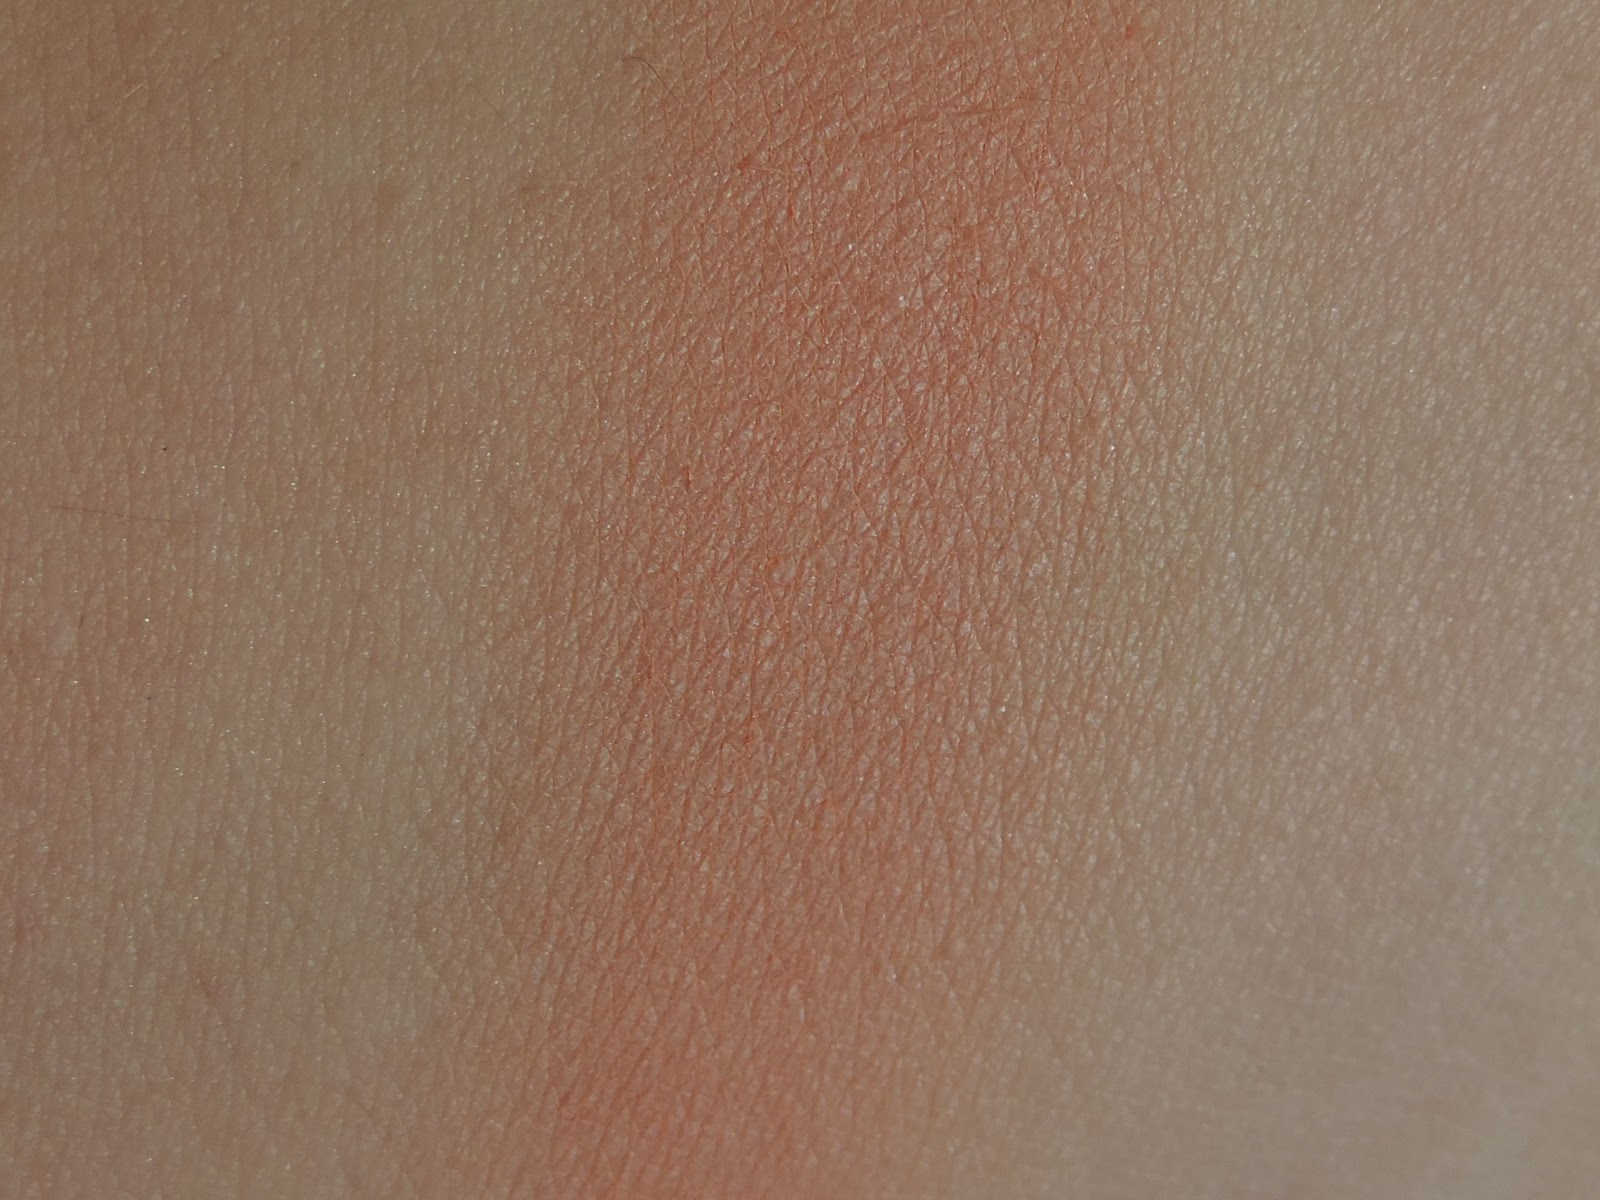 Swatch of Makeup Geek blush in Bliss